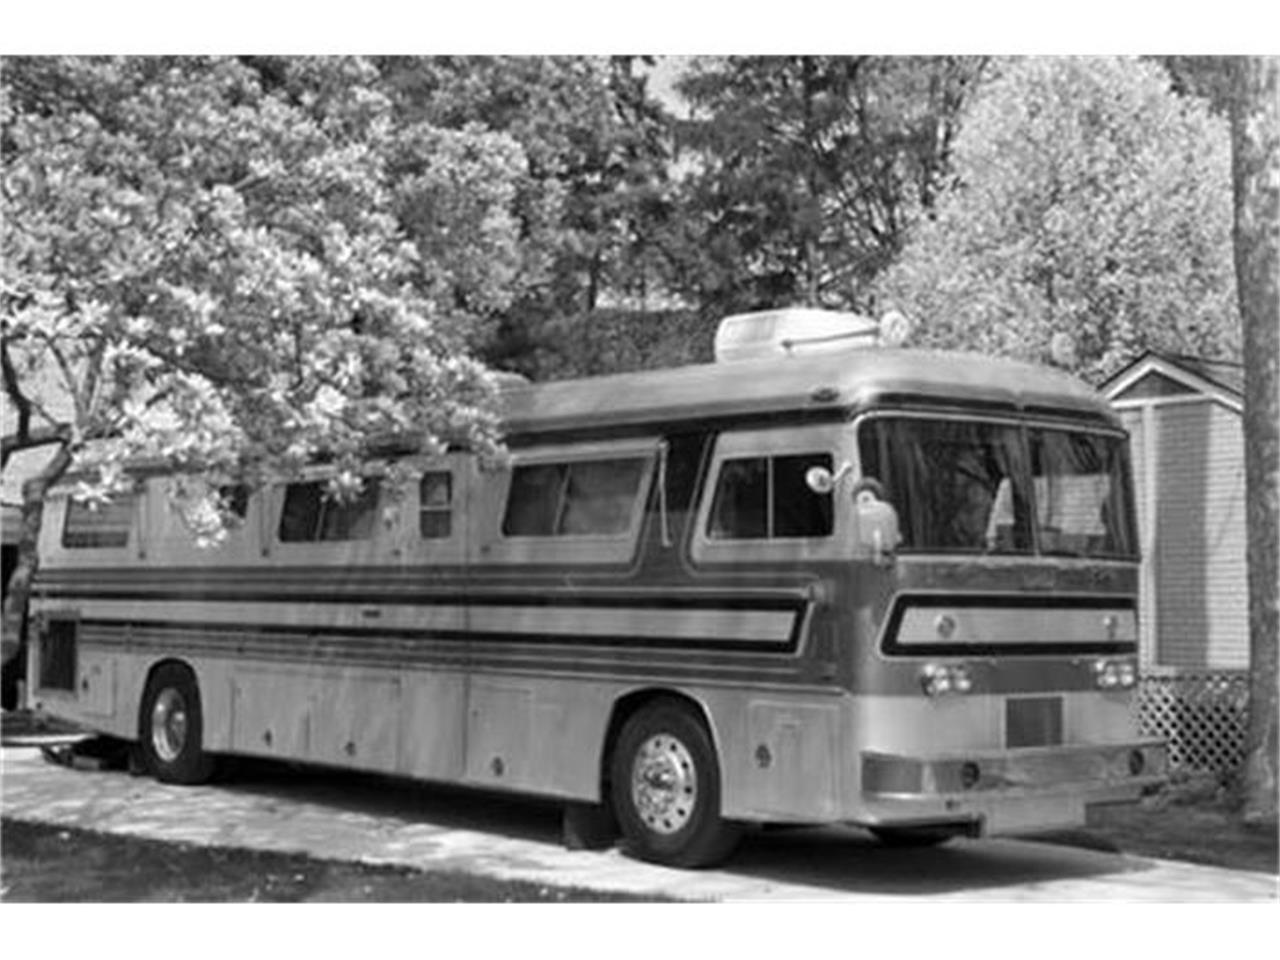 Large Picture of 1978 Unspecified Recreational Vehicle located in Connecticut - $9,995.00 - AMMO